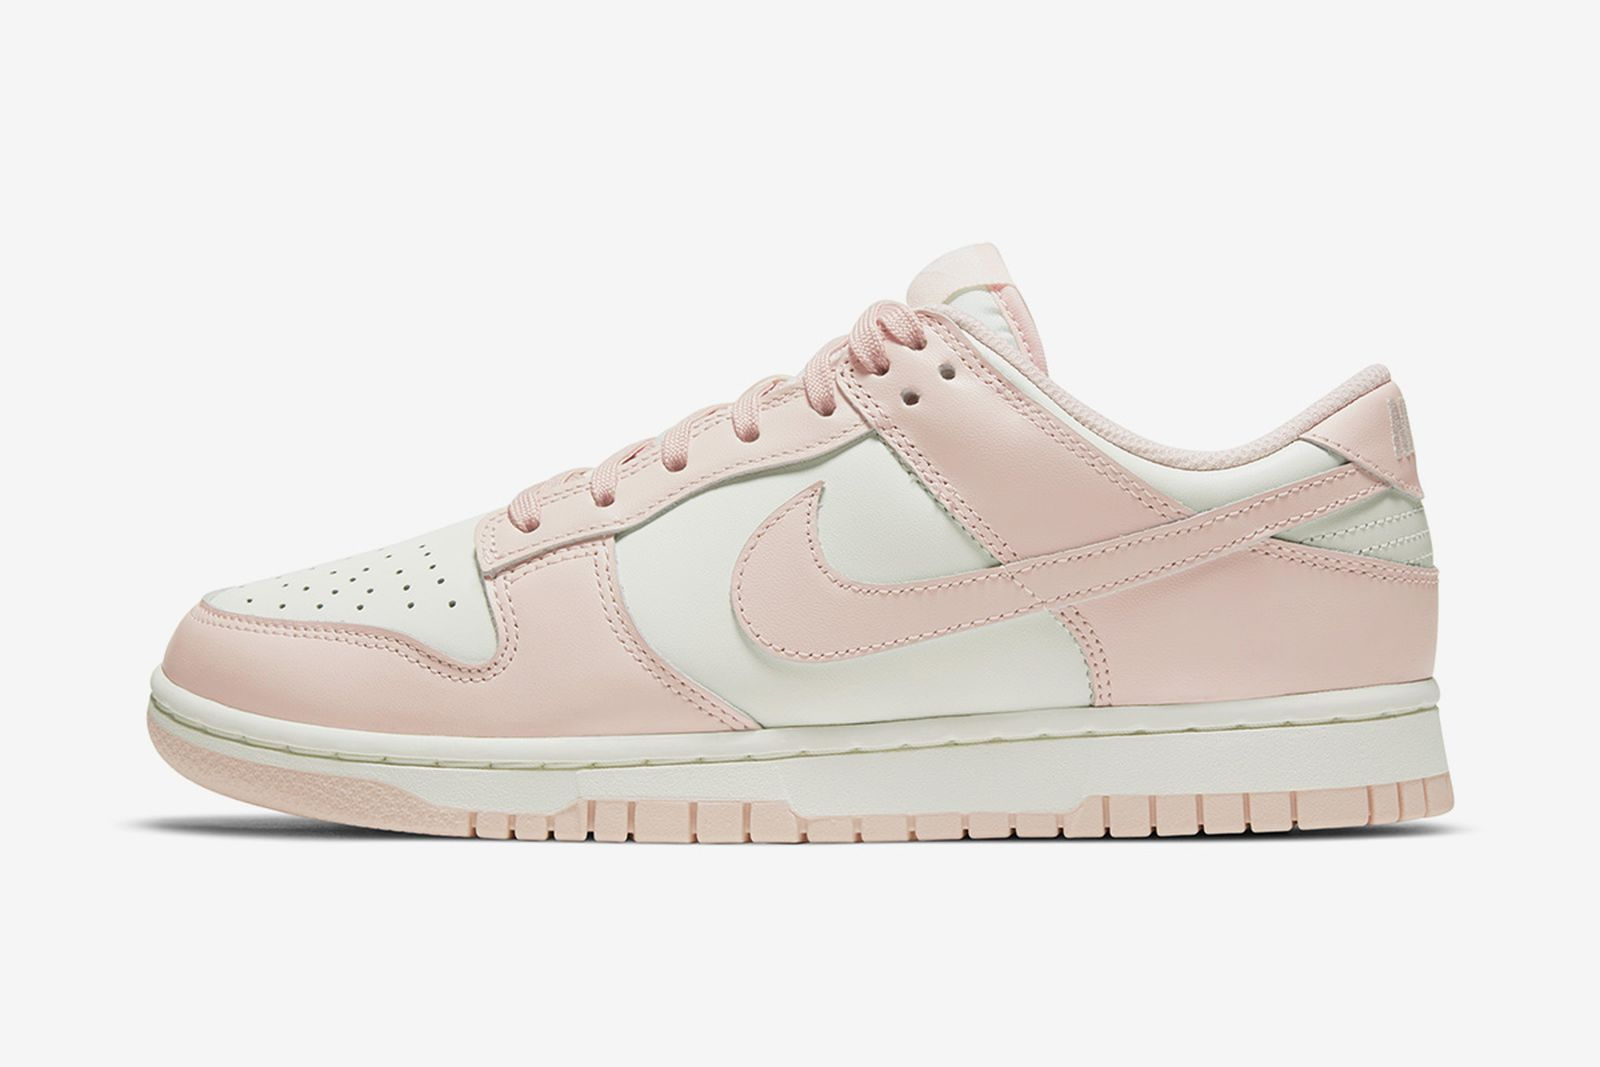 nike-dunk-spring-2021-release-date-price-1-26